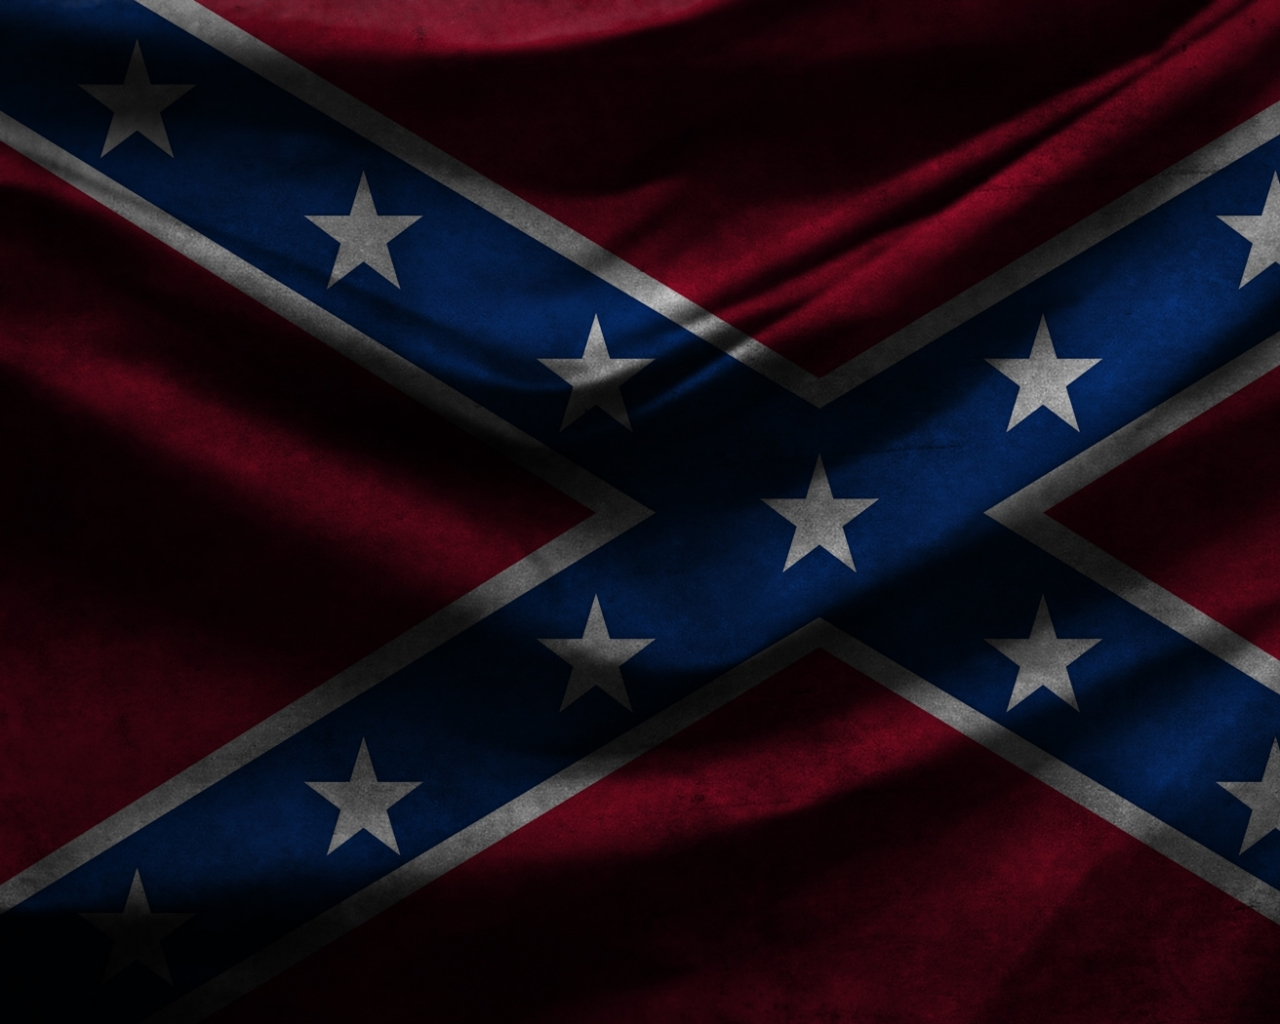 Confederate flag Confederate flag Wallpaper Wallpapers 1280x1024